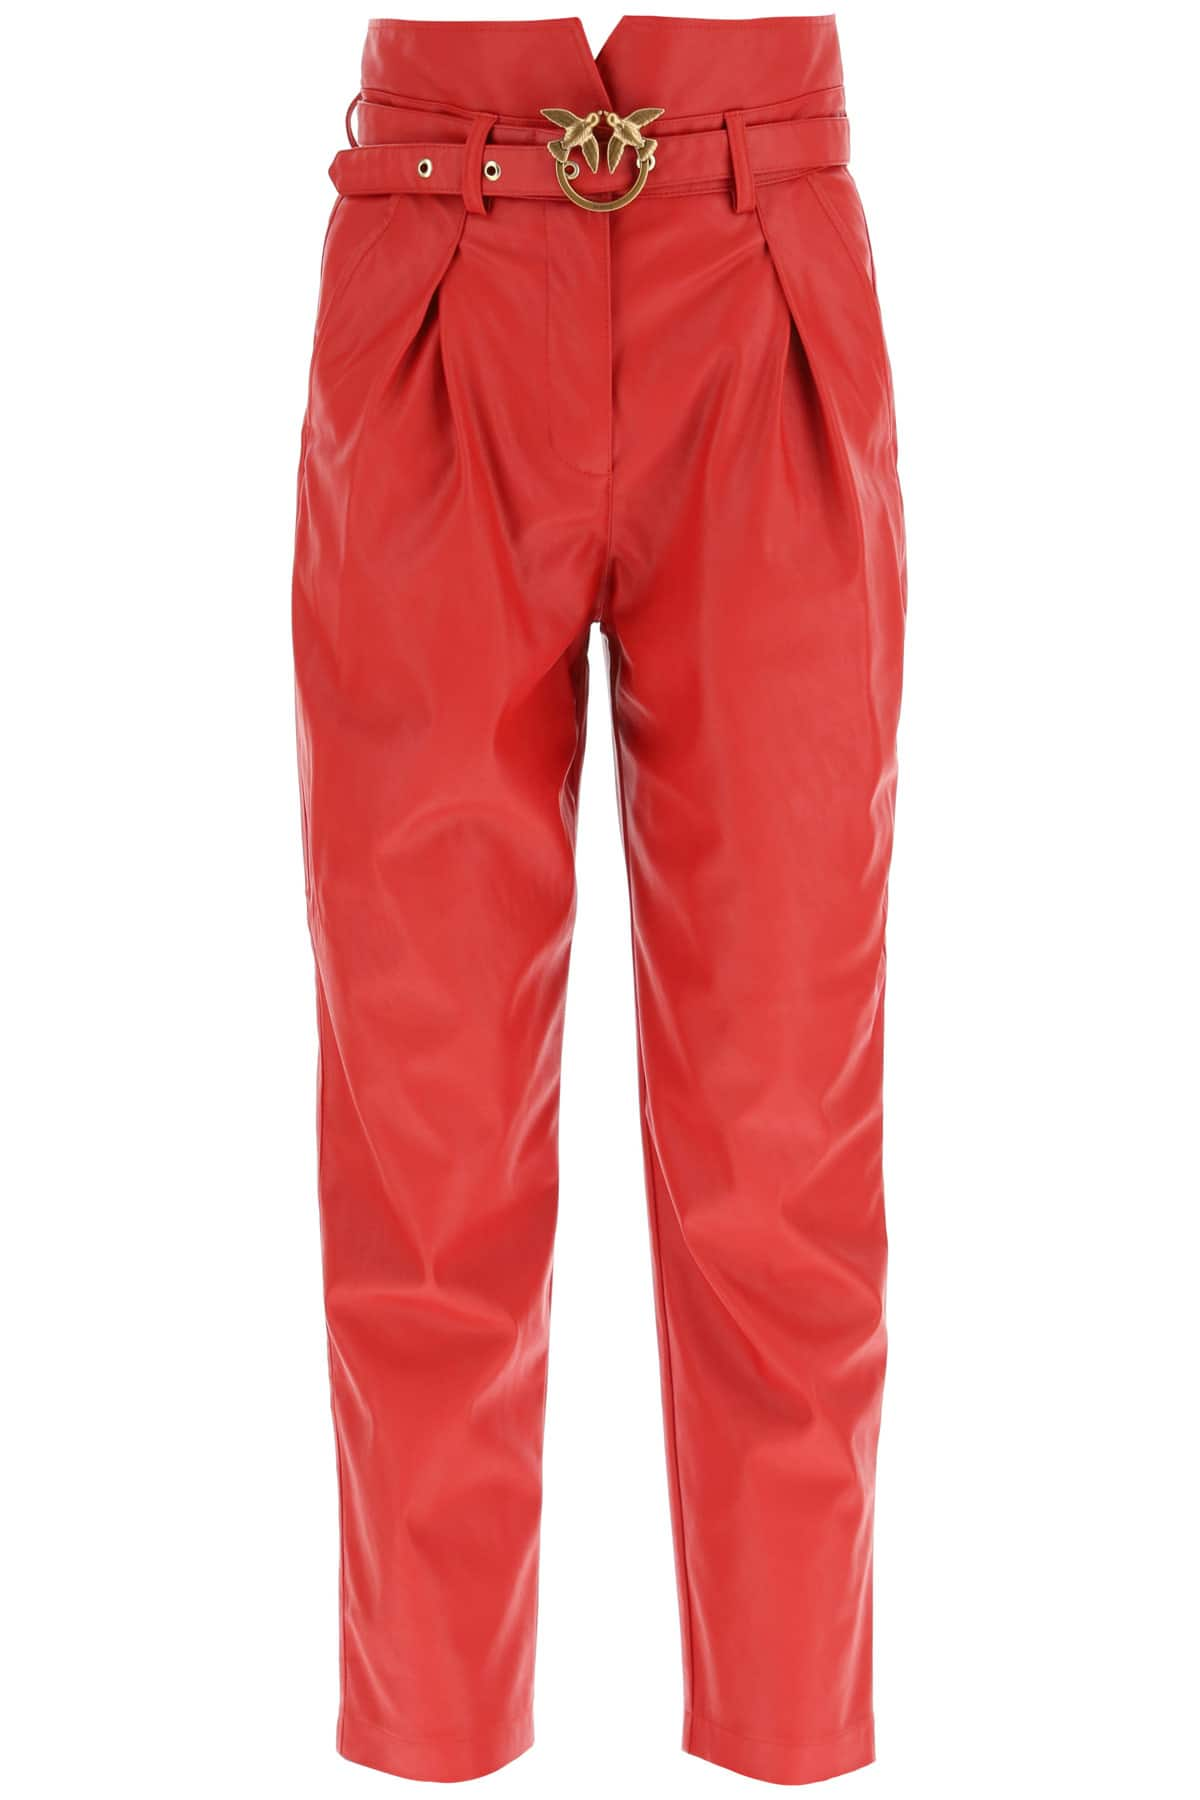 PINKO AURELIO FAUX LEATHER PANTS 44 Red Faux leather